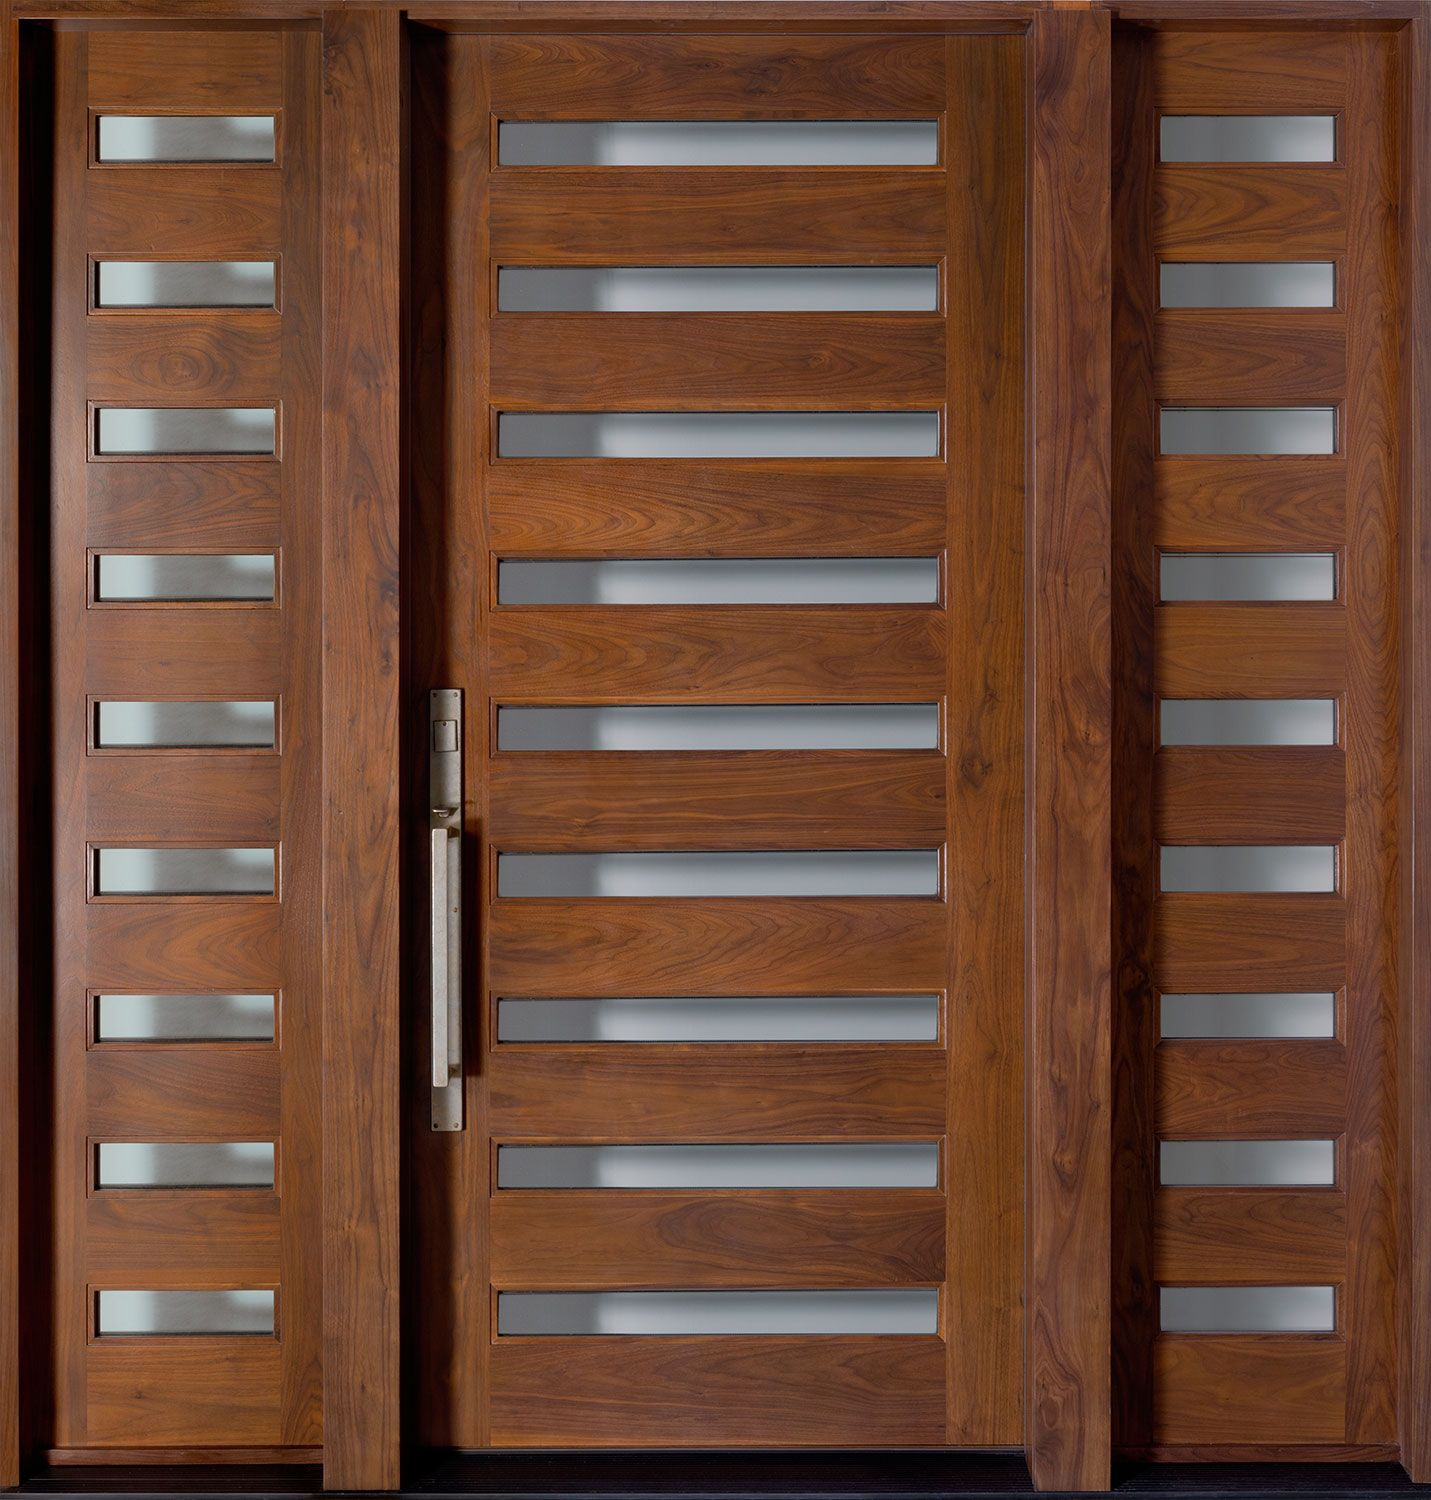 Nice modern exterior doors for home with wooden made and hollow space for ventilation and silver handrails and black floor color  sc 1 st  Pinterest & Nice modern exterior doors for home with wooden made and hollow ...